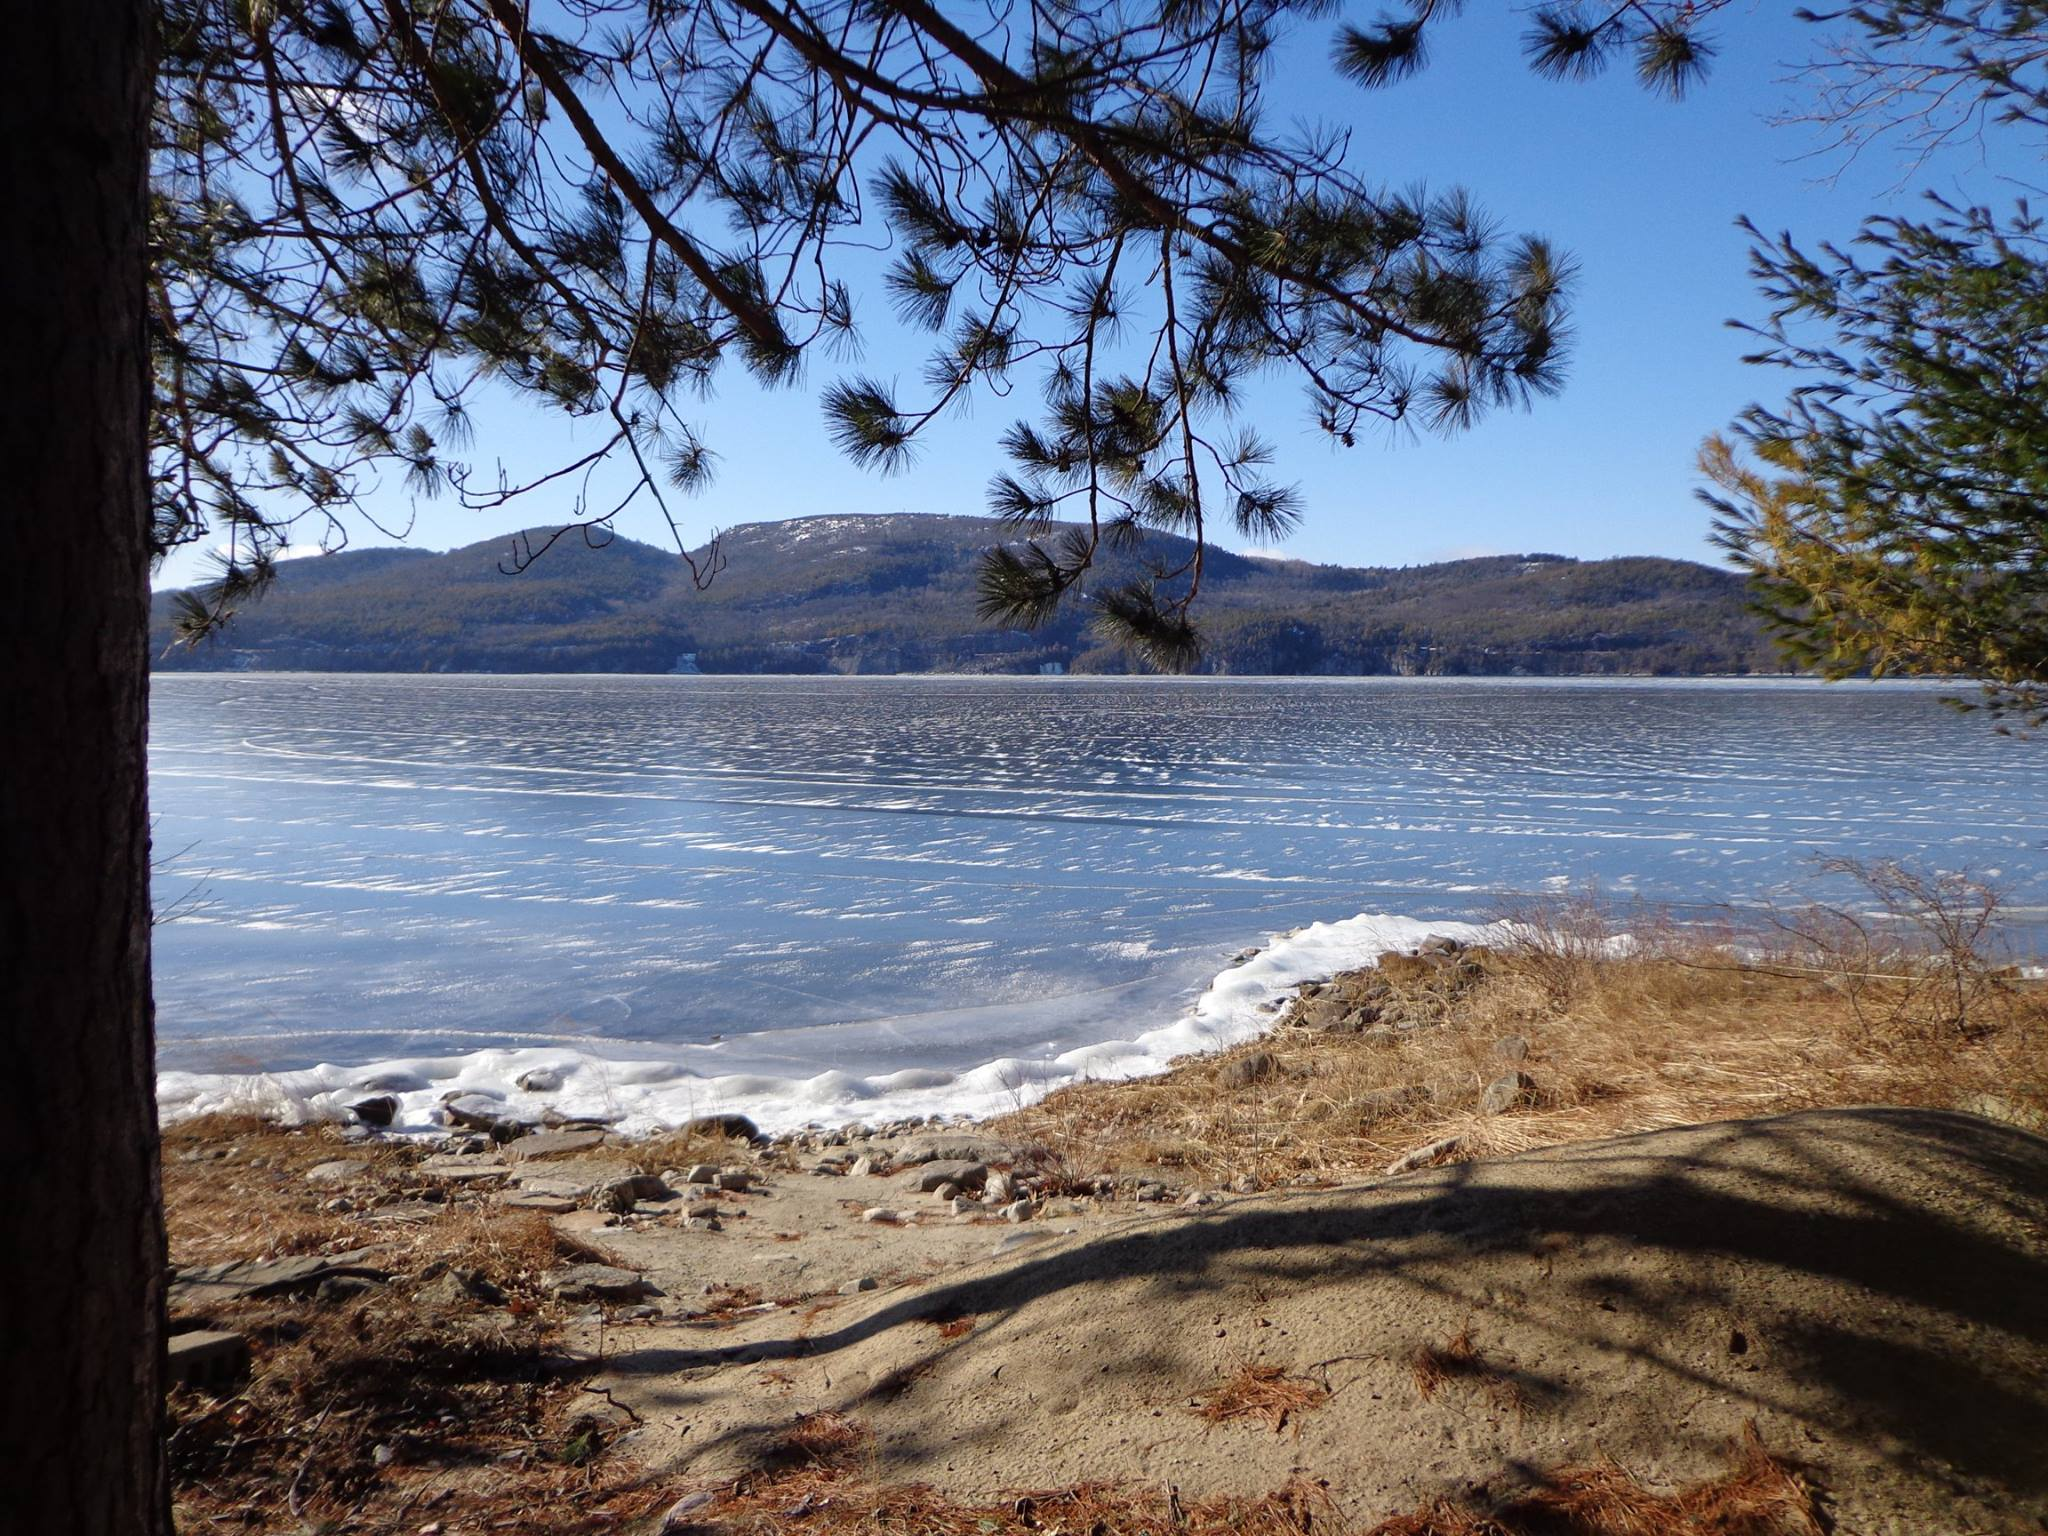 View of Frozen Lake Champlain from Ret. Col. Richard M. Connor Sr.'s camp on Indian Bay, January 25, 2015. Willsboro Point, New York. (Credit: Wendy Burt)